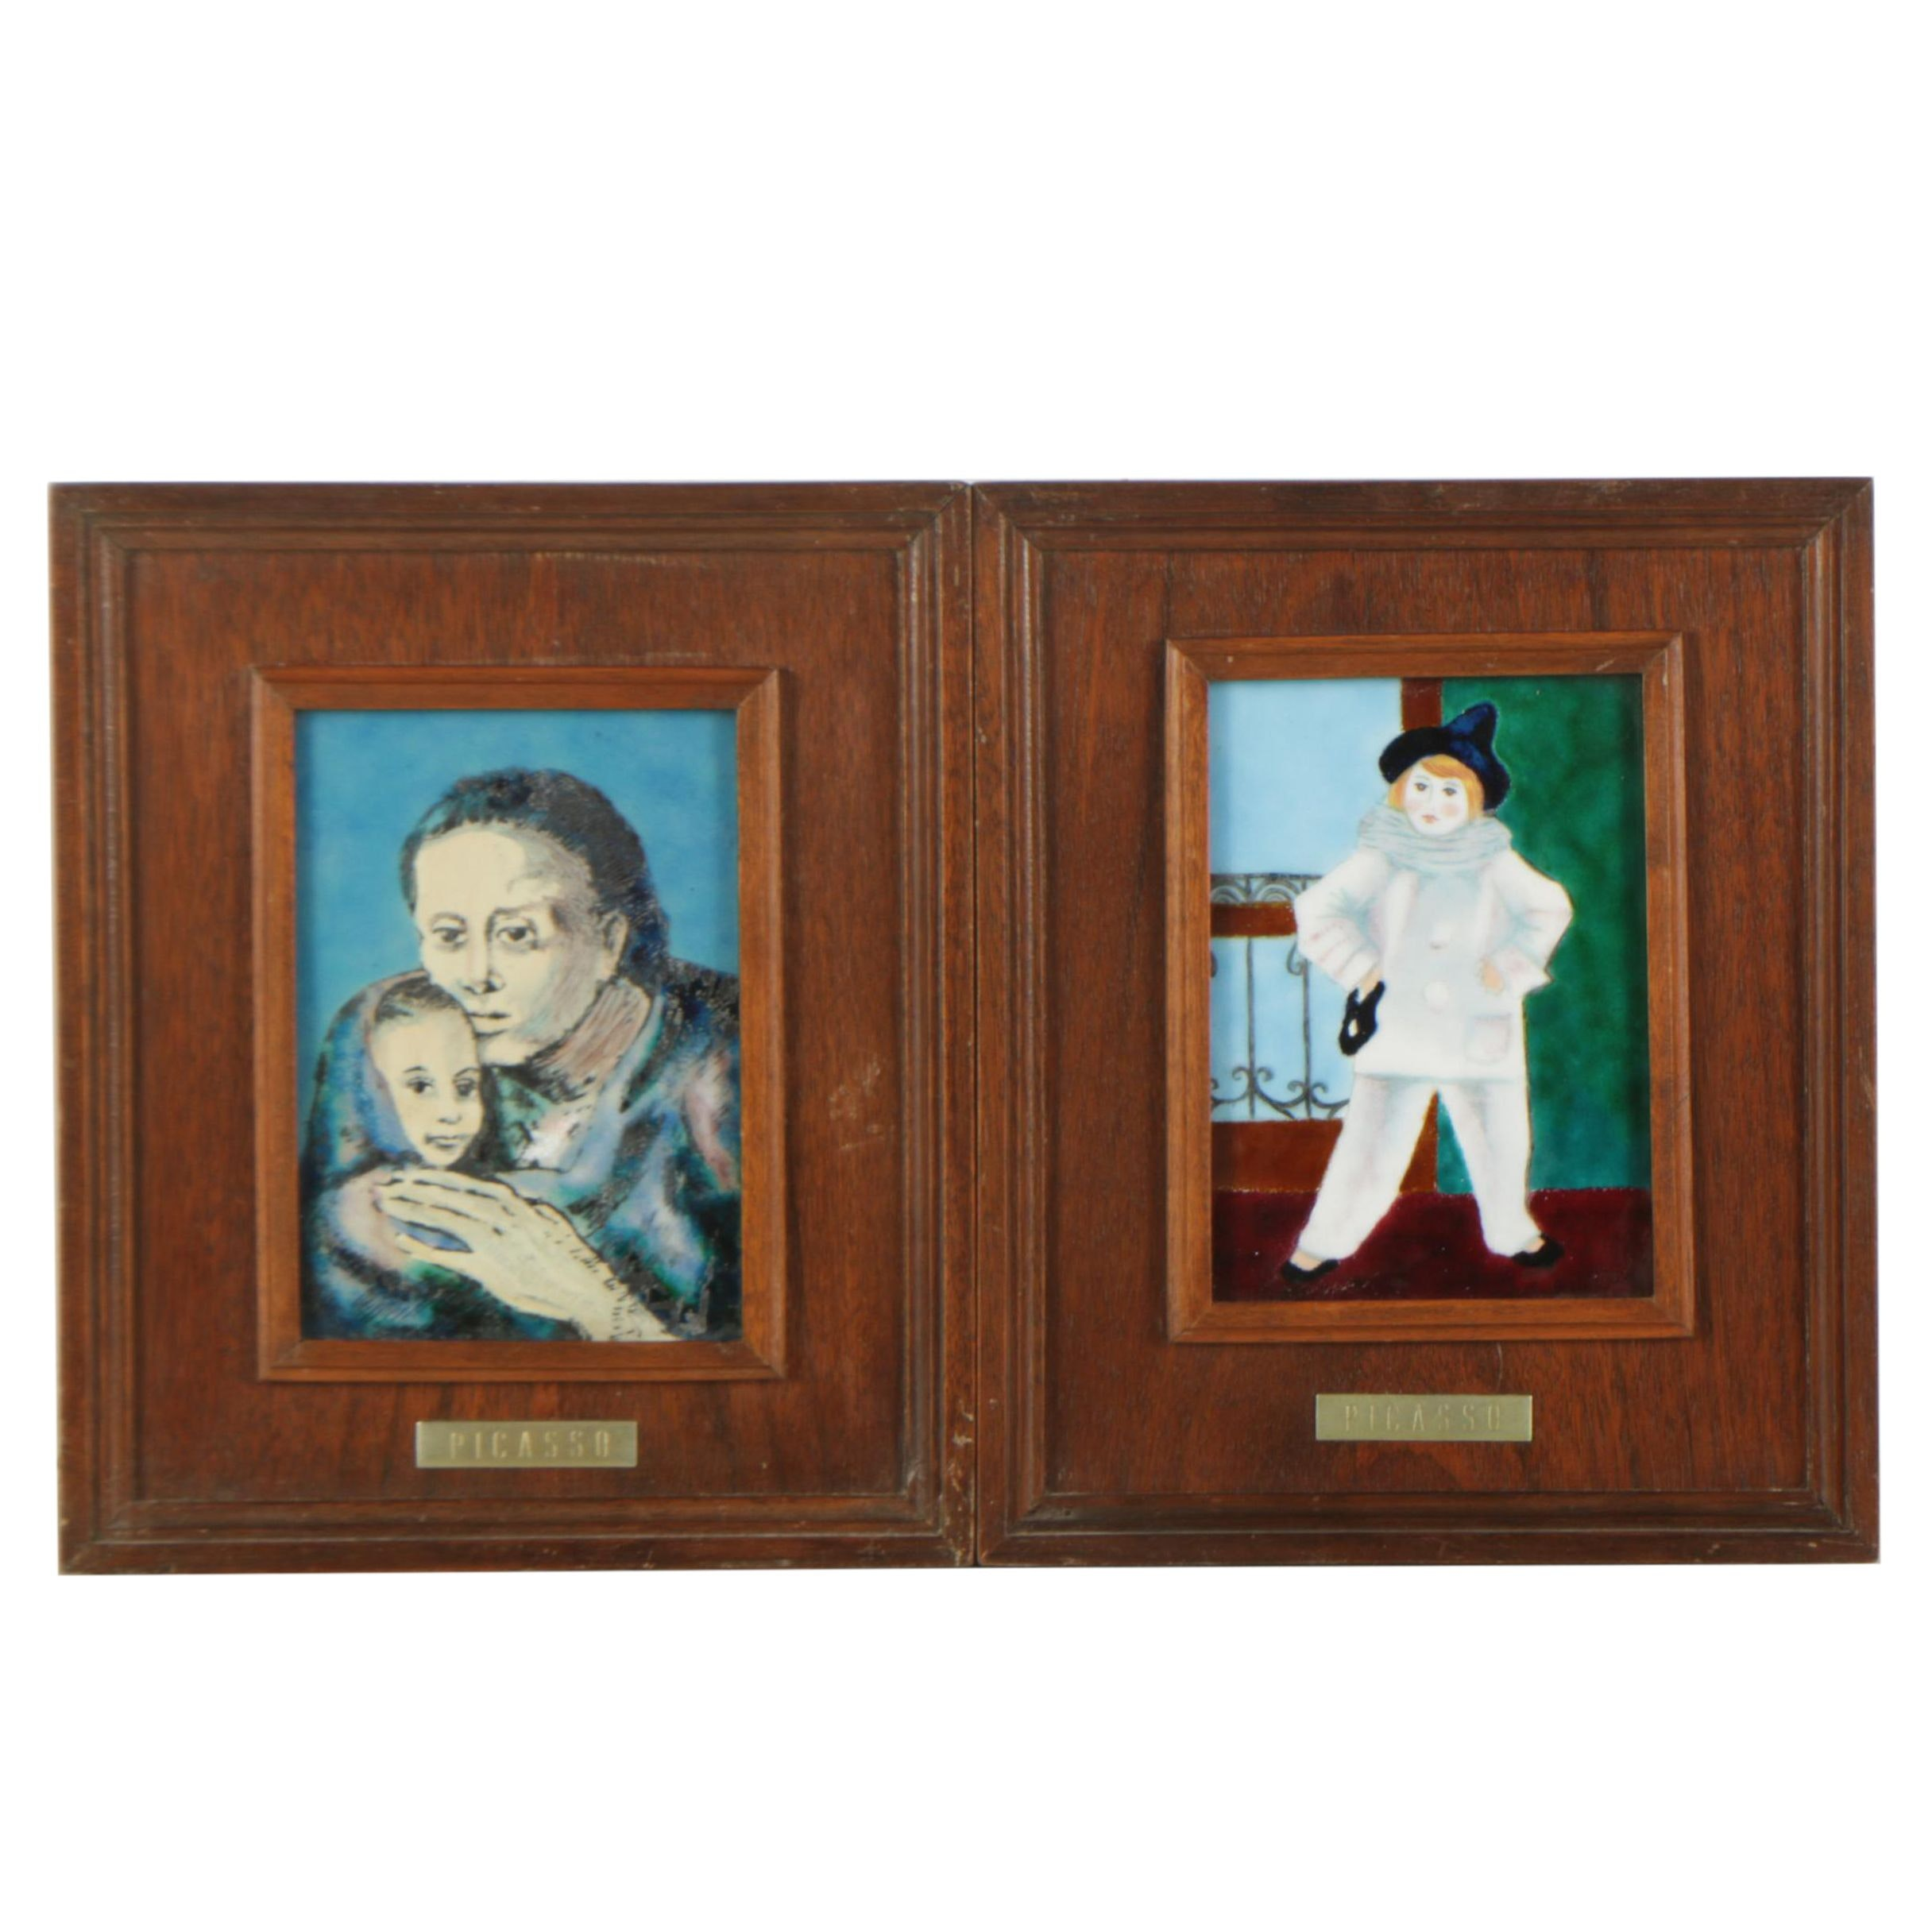 Enamel Paintings on Copper After Pablo Picasso